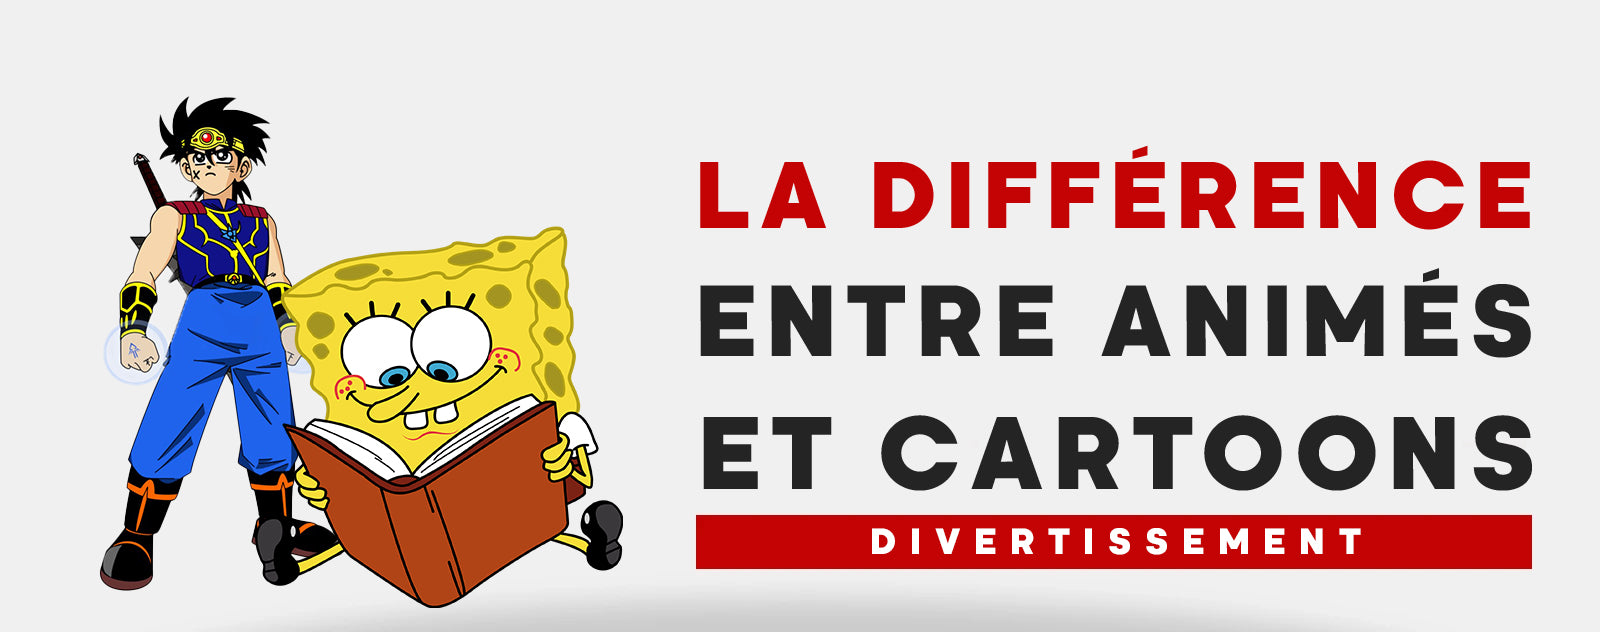 La Difference Entre Anime et Cartoon